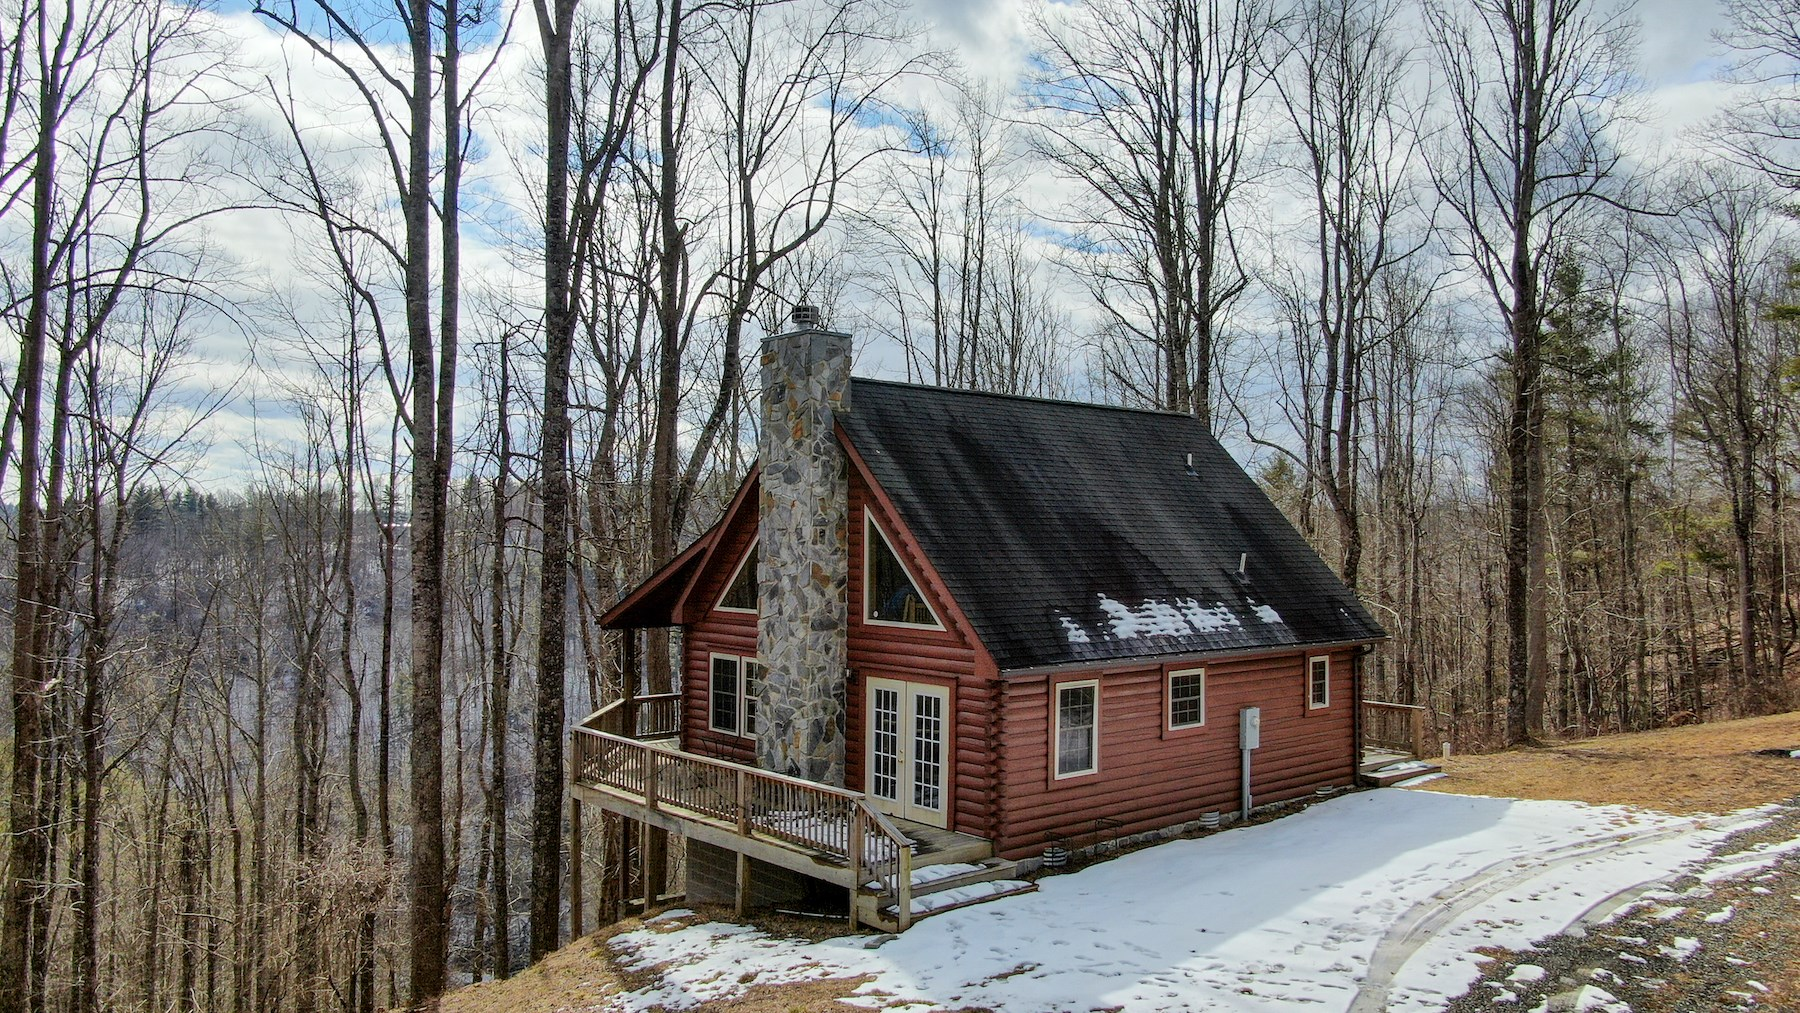 Log Home for Sale in Dugspur VA with Creek Frontage!